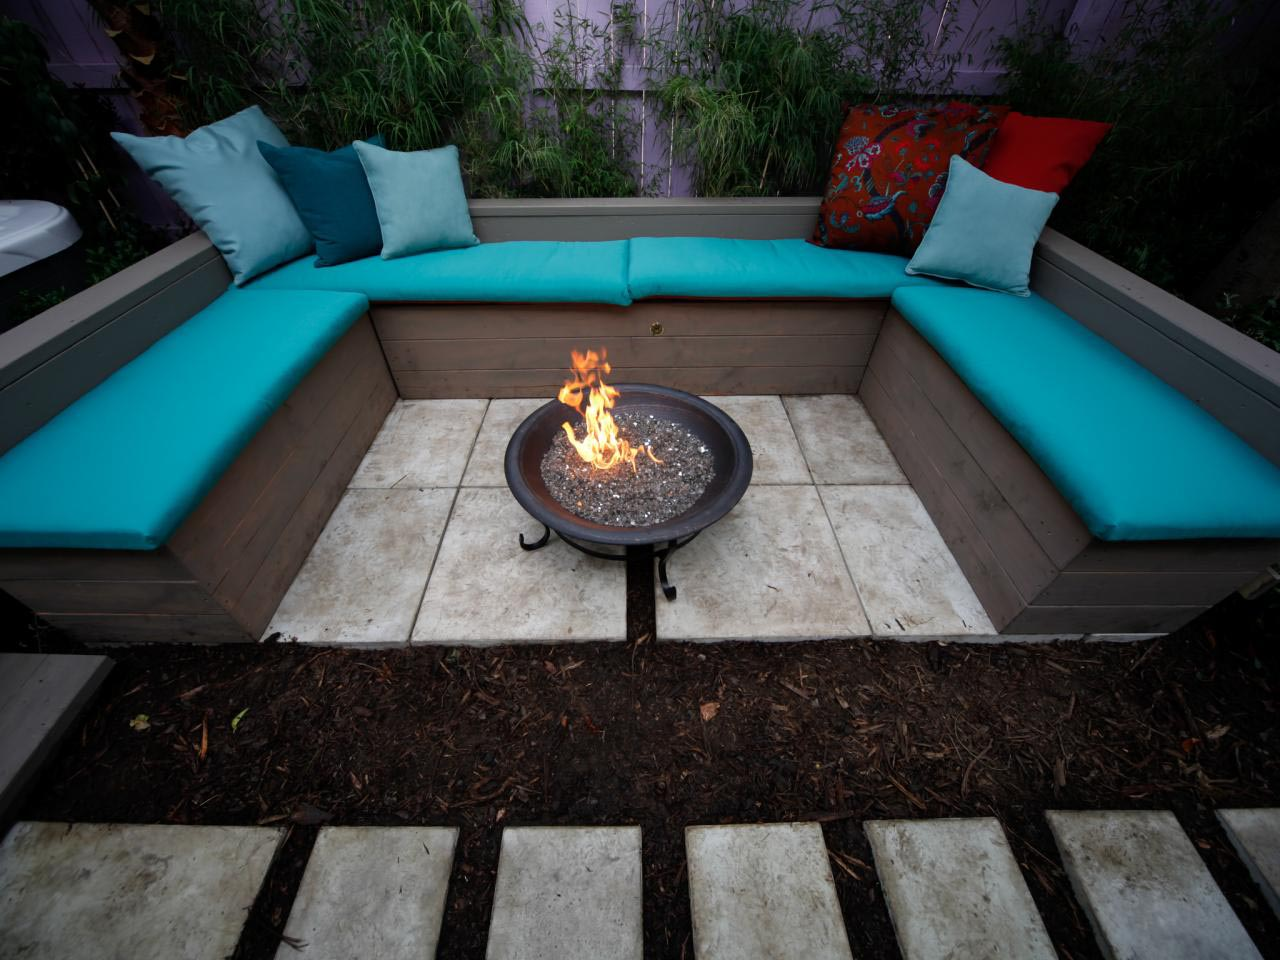 Stone Fire Pit Deck And Patio Furniture Contemporary Backyard